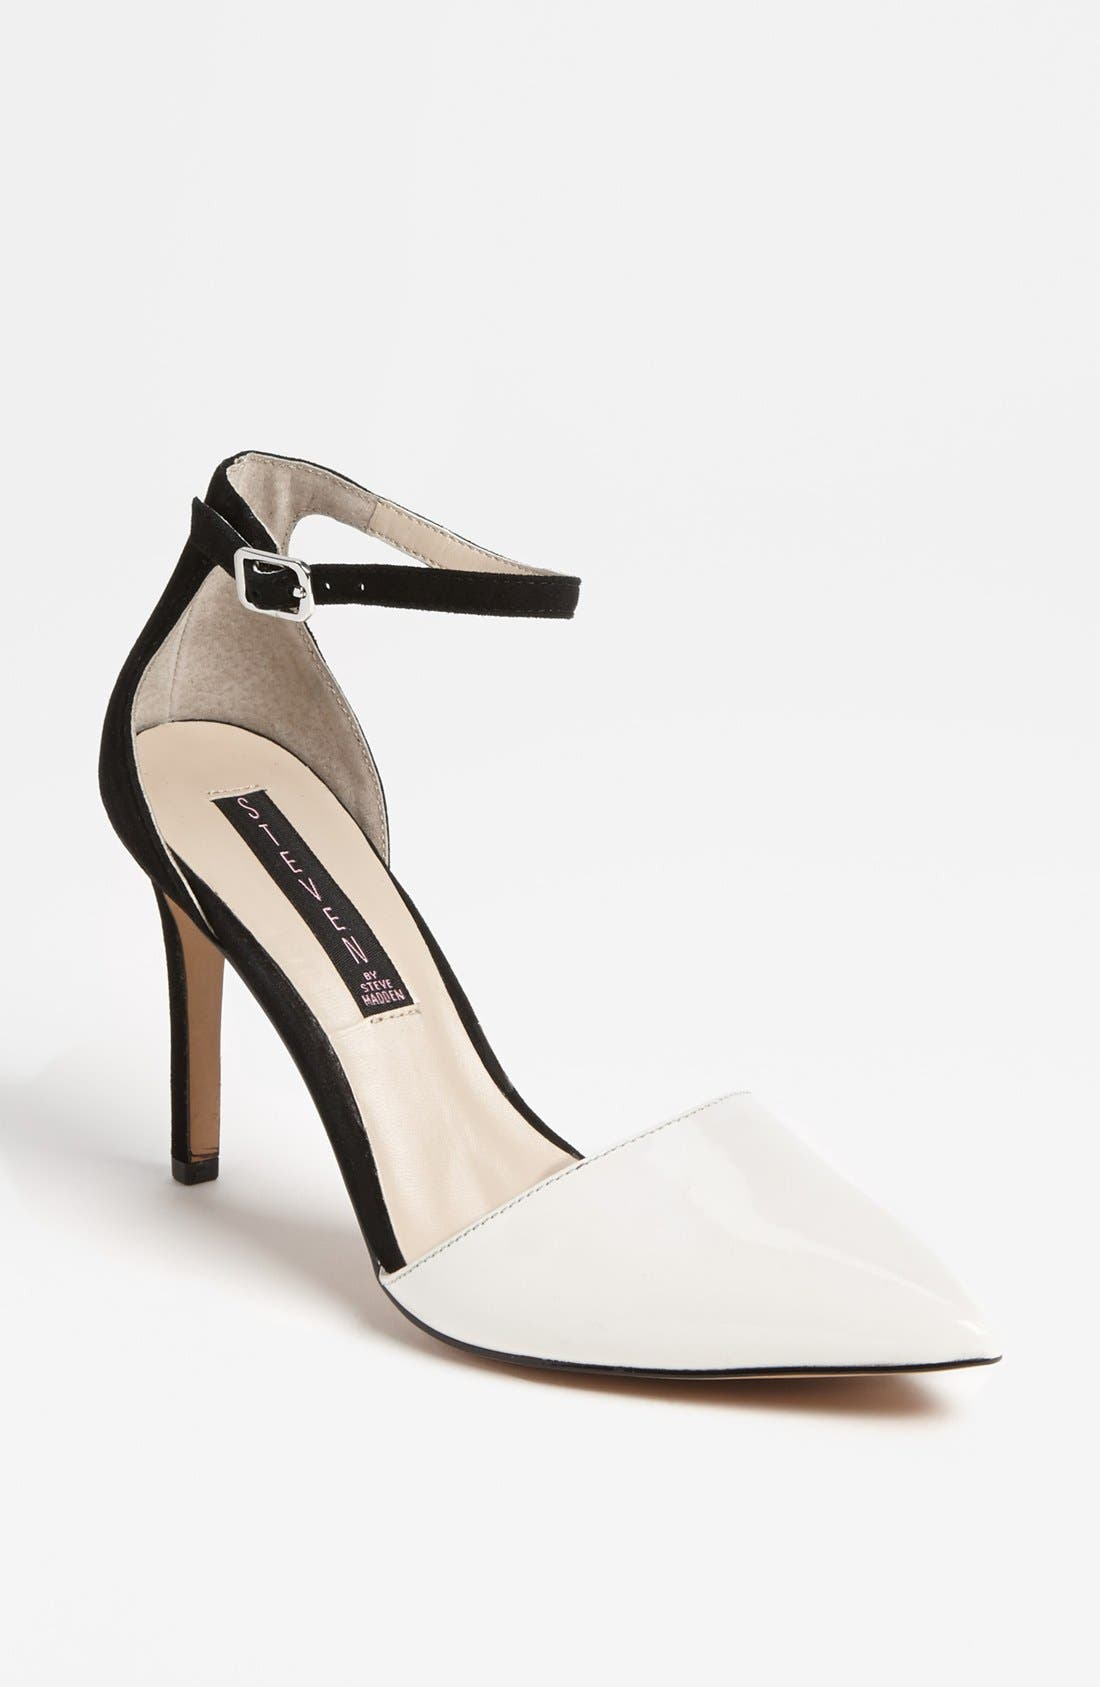 Alternate Image 1 Selected - Steven by Steve Madden 'Anibell' Pump